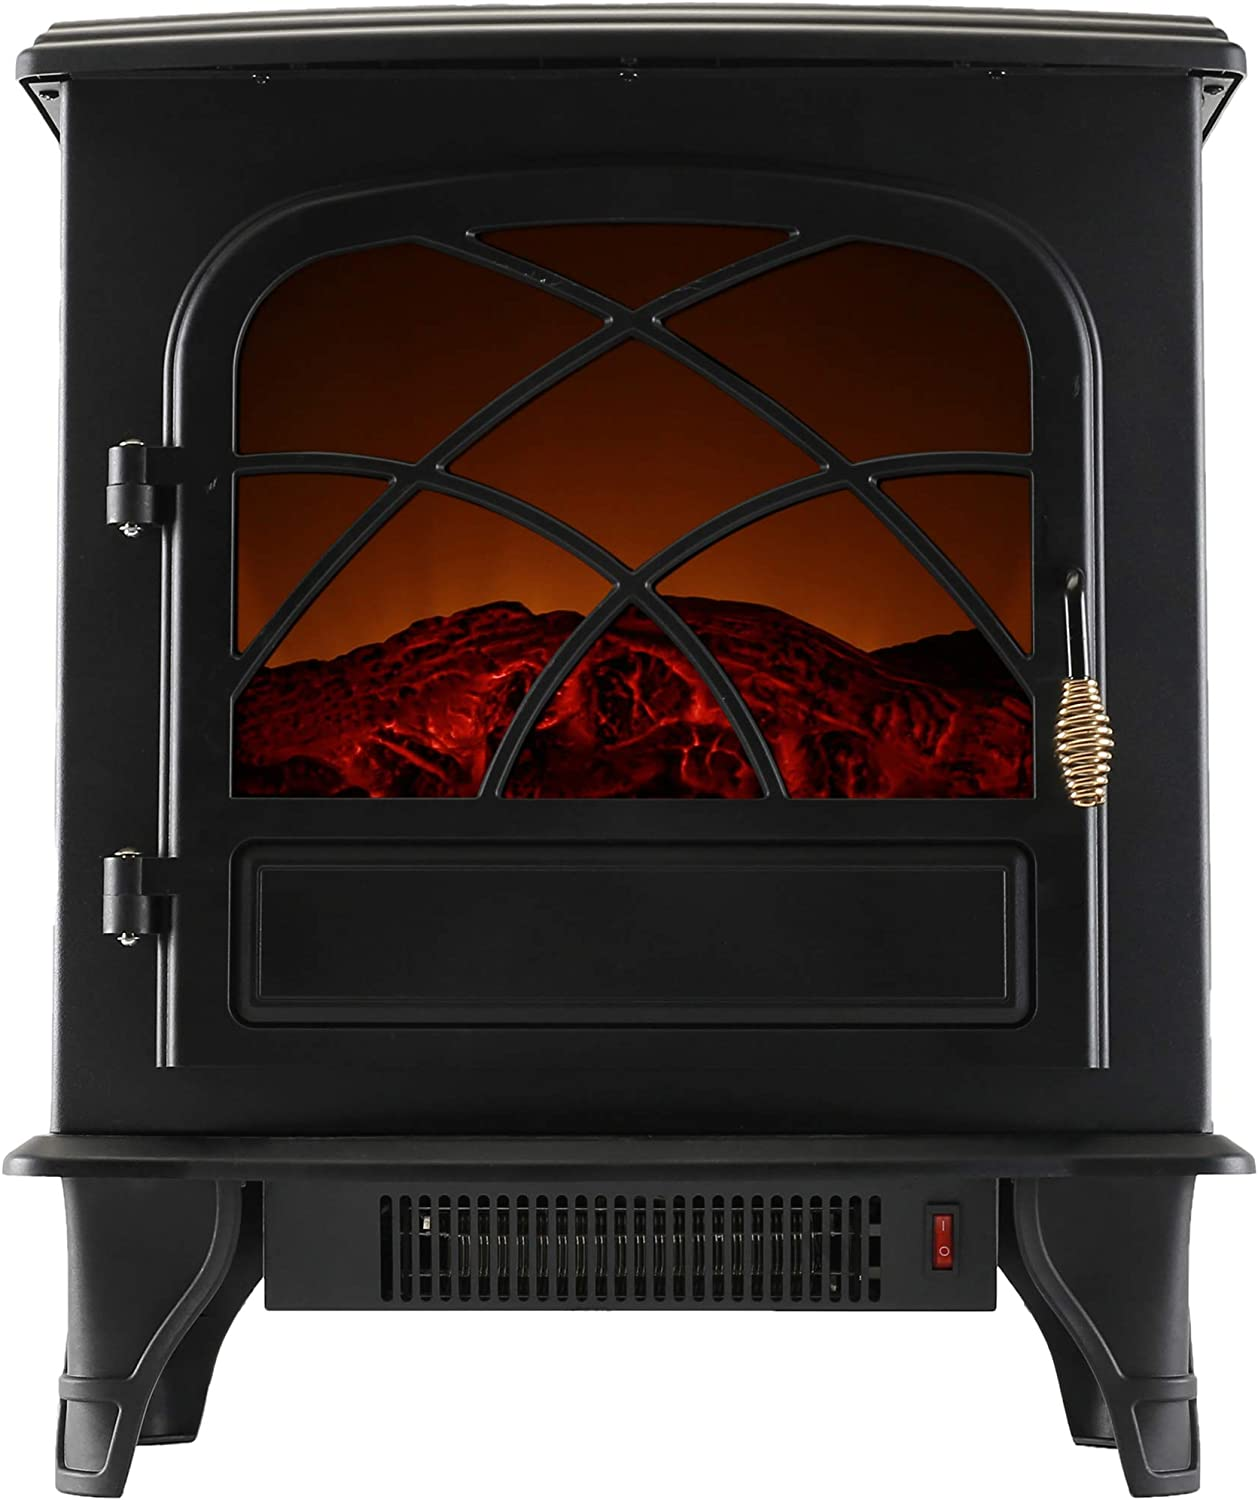 Caesar Indoor Electric Fireplace Stove Heater NO Remote Control, Freestanding ,Realistic Flame, Electric Fireplace Stove, Portable, Infrared, Thermostat, Overheating Safety System, 750/1500W, 23